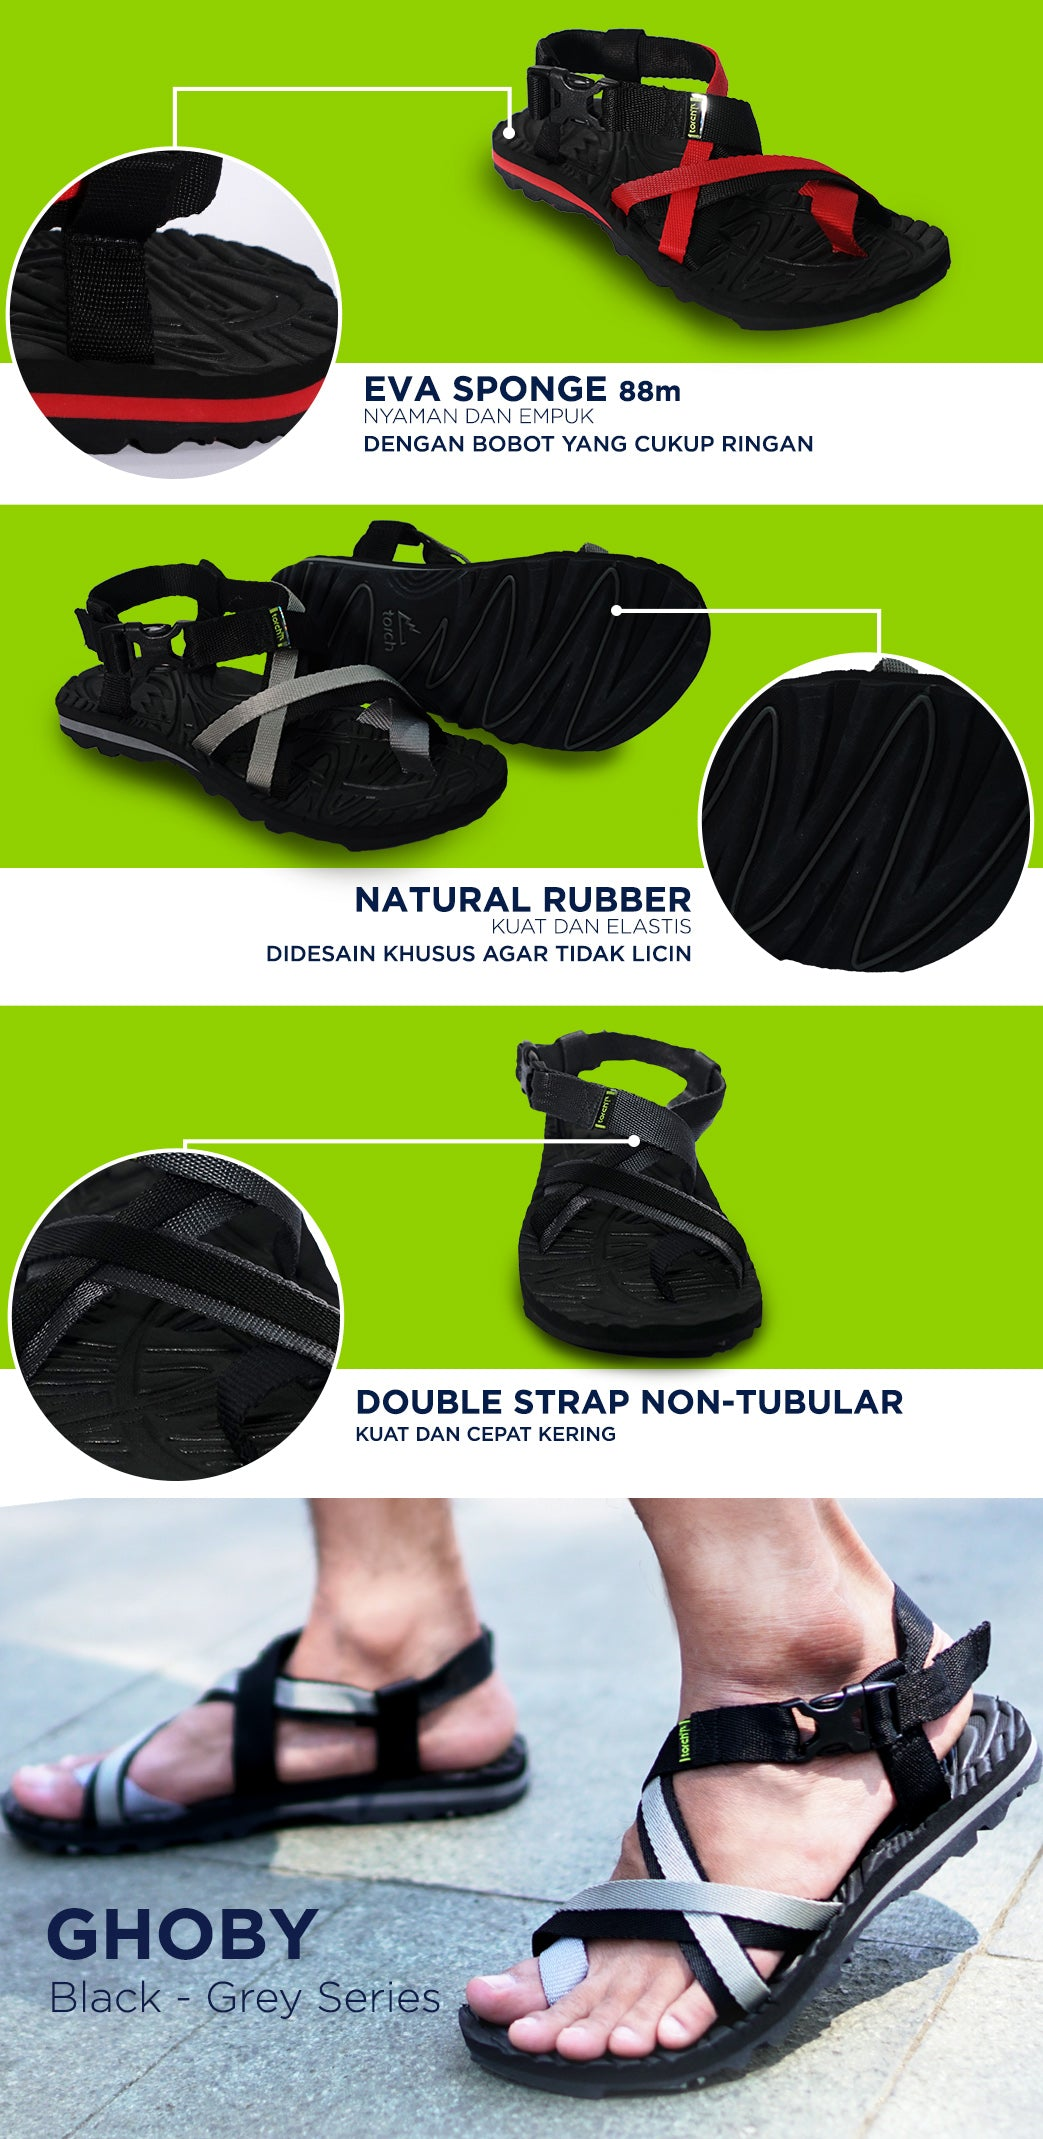 Sandal Ghoby - Sandal Amphibi for Sand, rock n' water